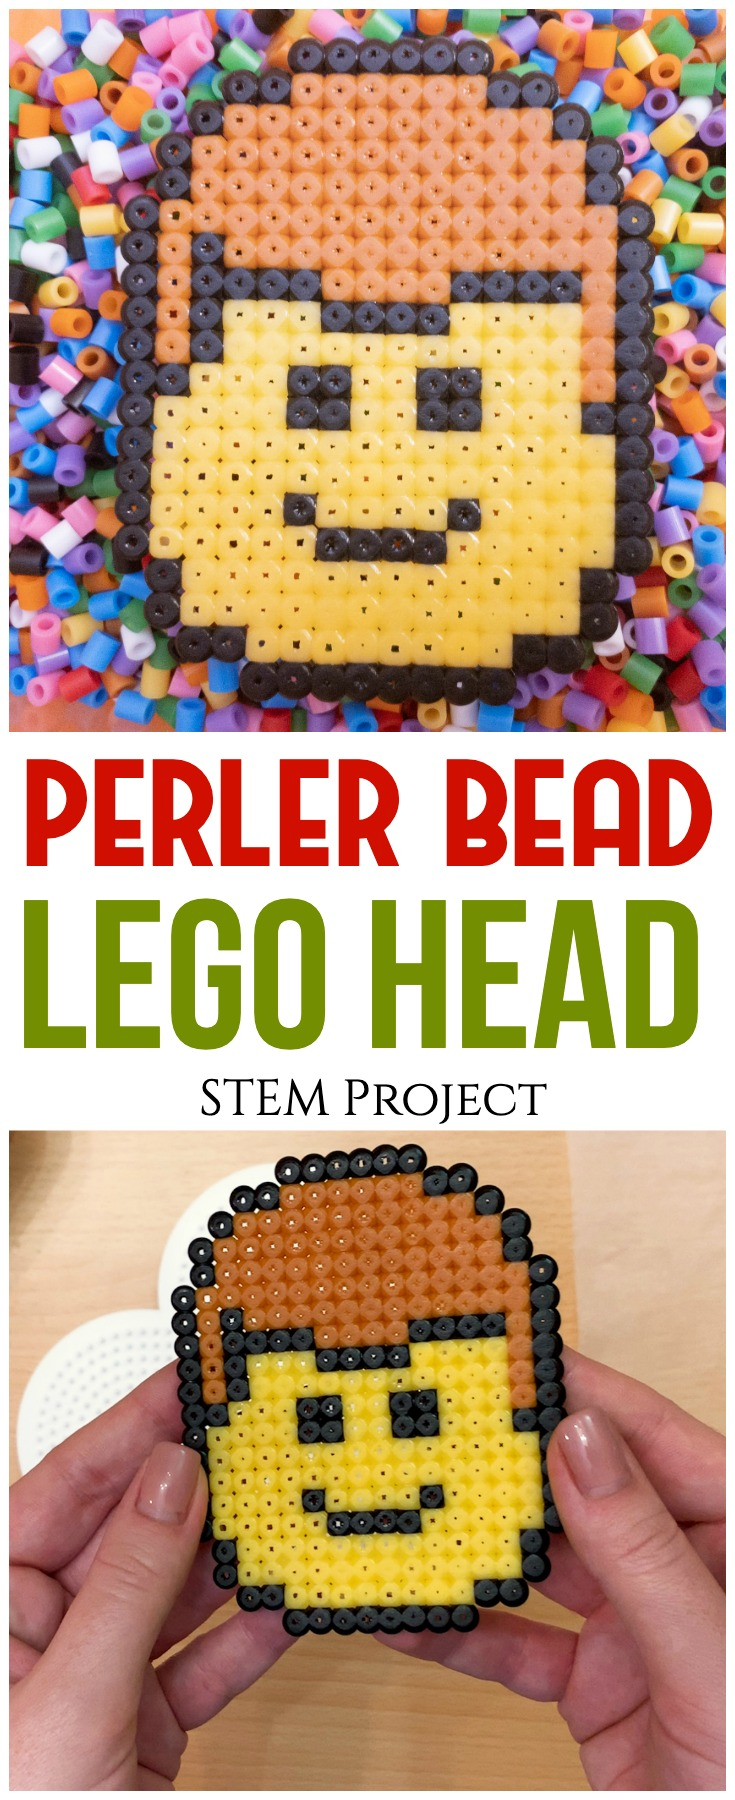 This perler bead LEGO head is a fun and adorable project that will help kids develop fine motor skills, patience and artistic design!